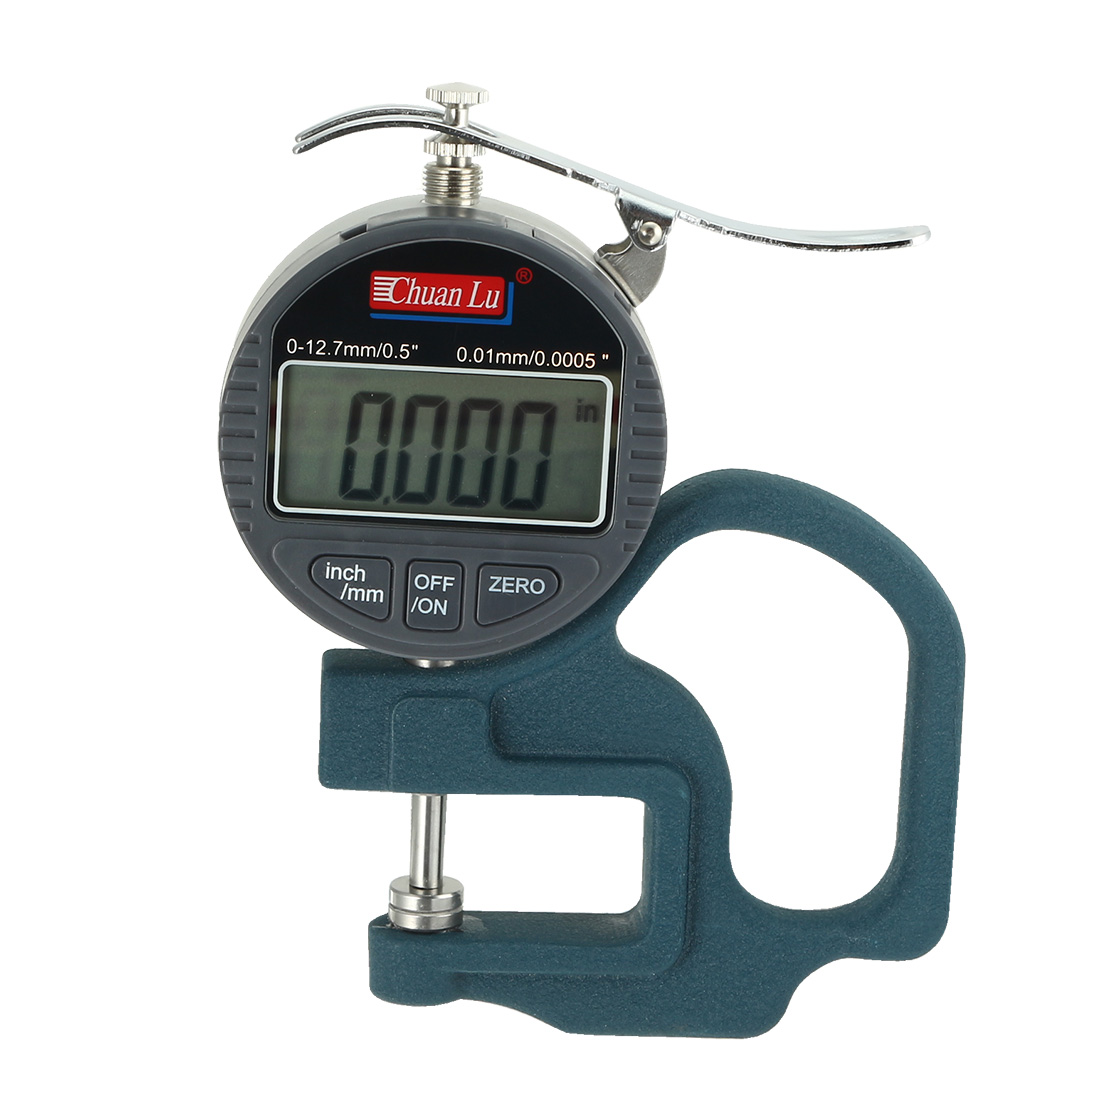 "Digital Thickness Gage 0-0.5"" Range 0.0005"" Resolution +/-0.001"" Accuracy"